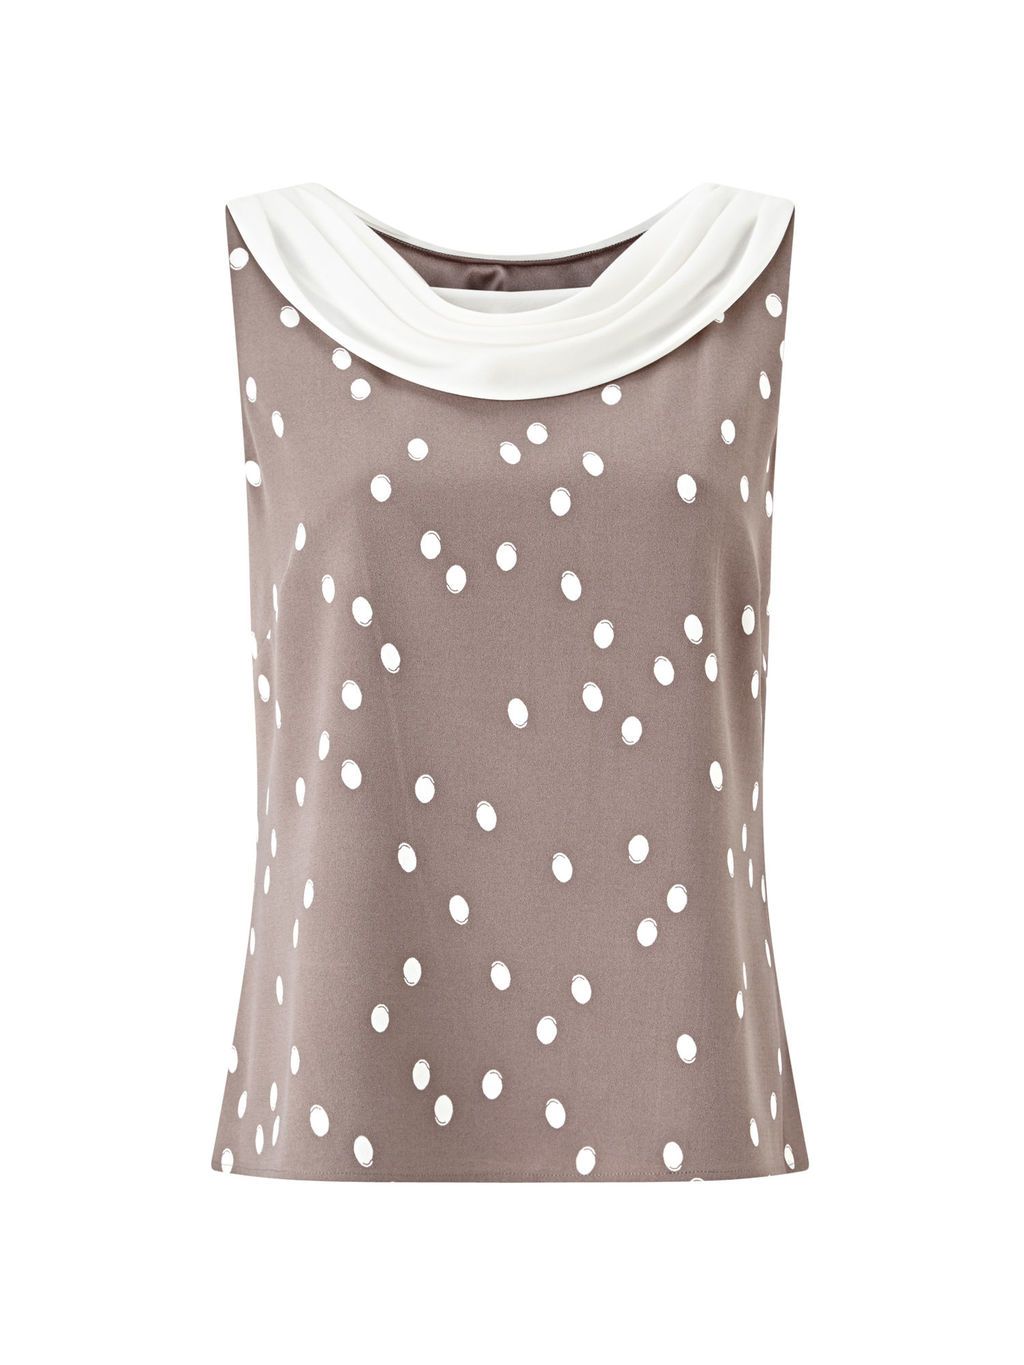 Spot Crepe Contrast Trim Top, Brown/Multi - neckline: round neck; sleeve style: sleeveless; pattern: polka dot; secondary colour: ivory/cream; predominant colour: taupe; occasions: evening, work, occasion; length: standard; style: top; fibres: polyester/polyamide - 100%; fit: body skimming; sleeve length: sleeveless; texture group: crepes; pattern type: fabric; pattern size: big & busy (top); season: s/s 2016